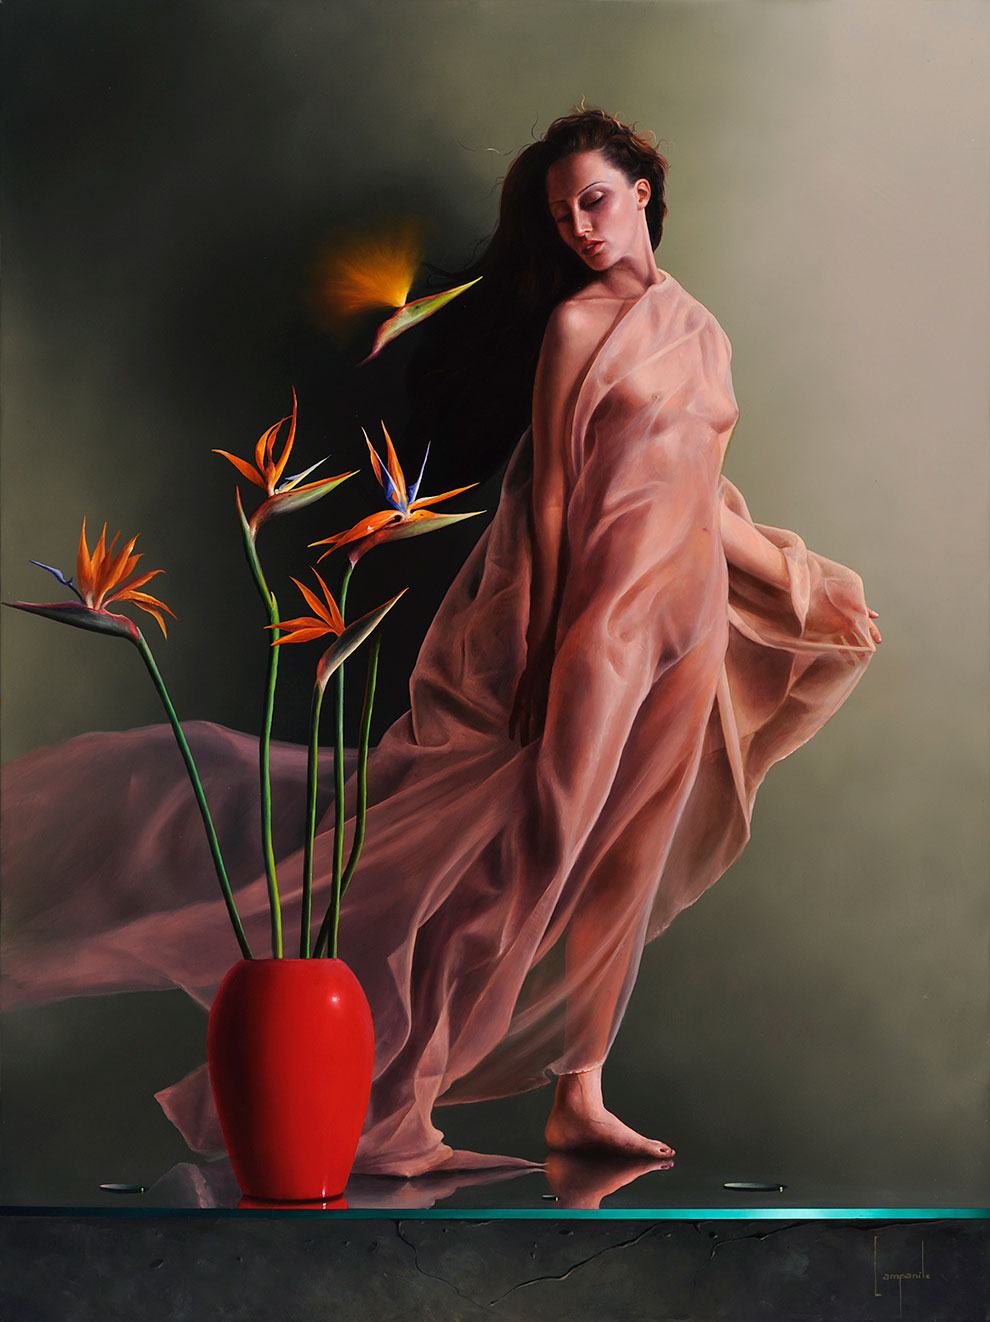 10941 best Colors images on Pinterest | Artists, Etchings ... |Realistic Figurative Painting